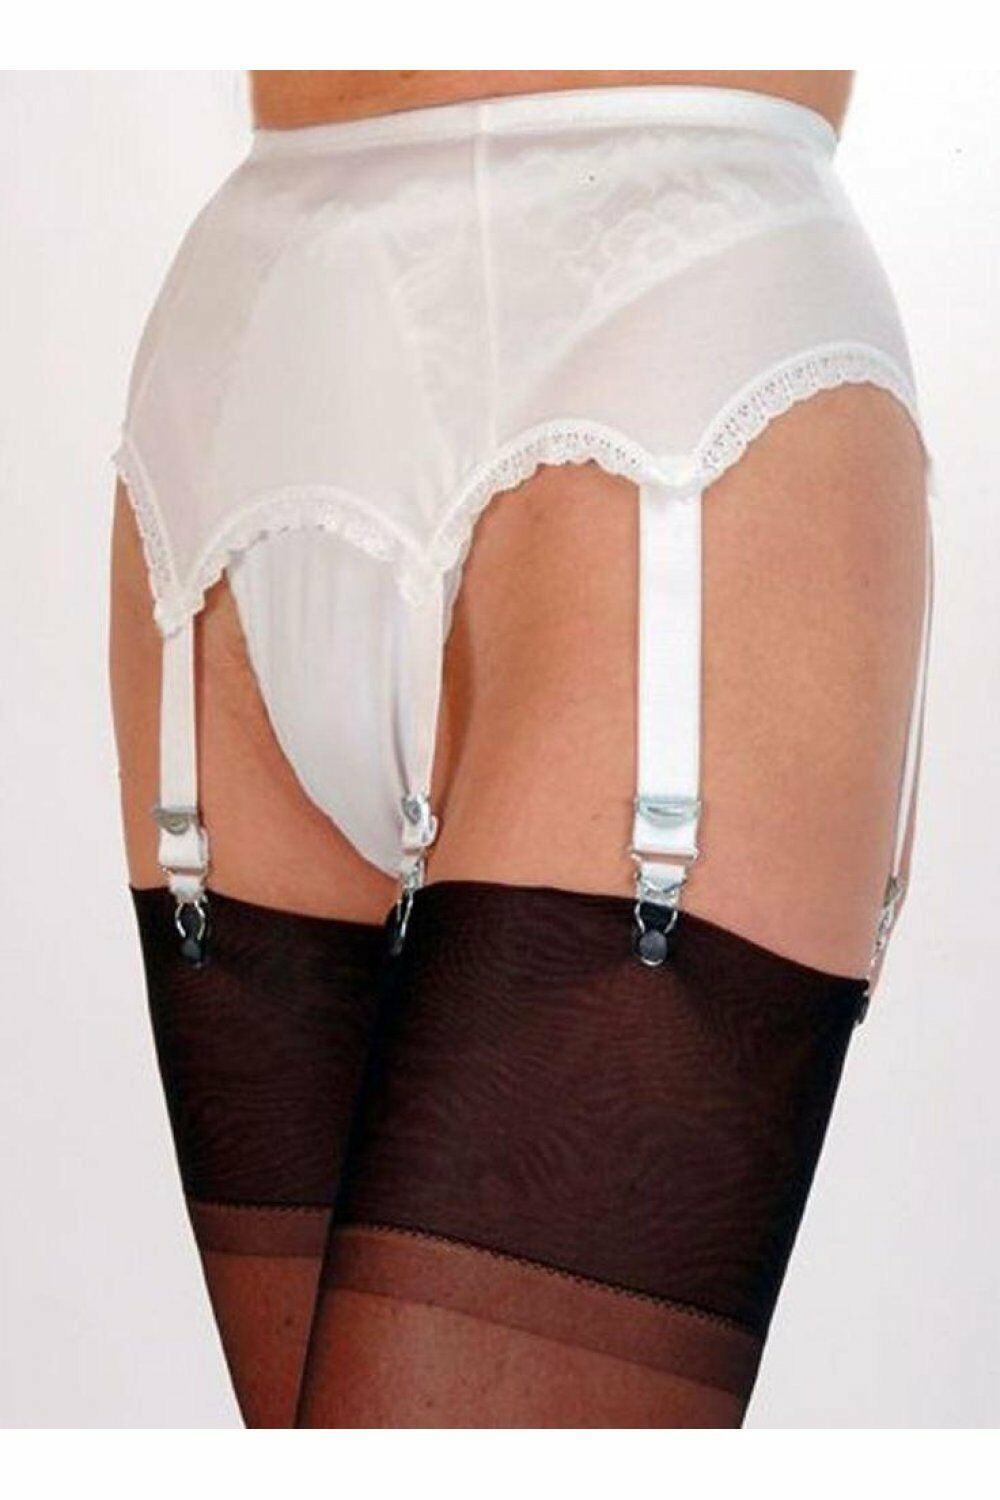 Simply Vintage 6 Strap Suspender Belt with Metal Clasps and Adjusters